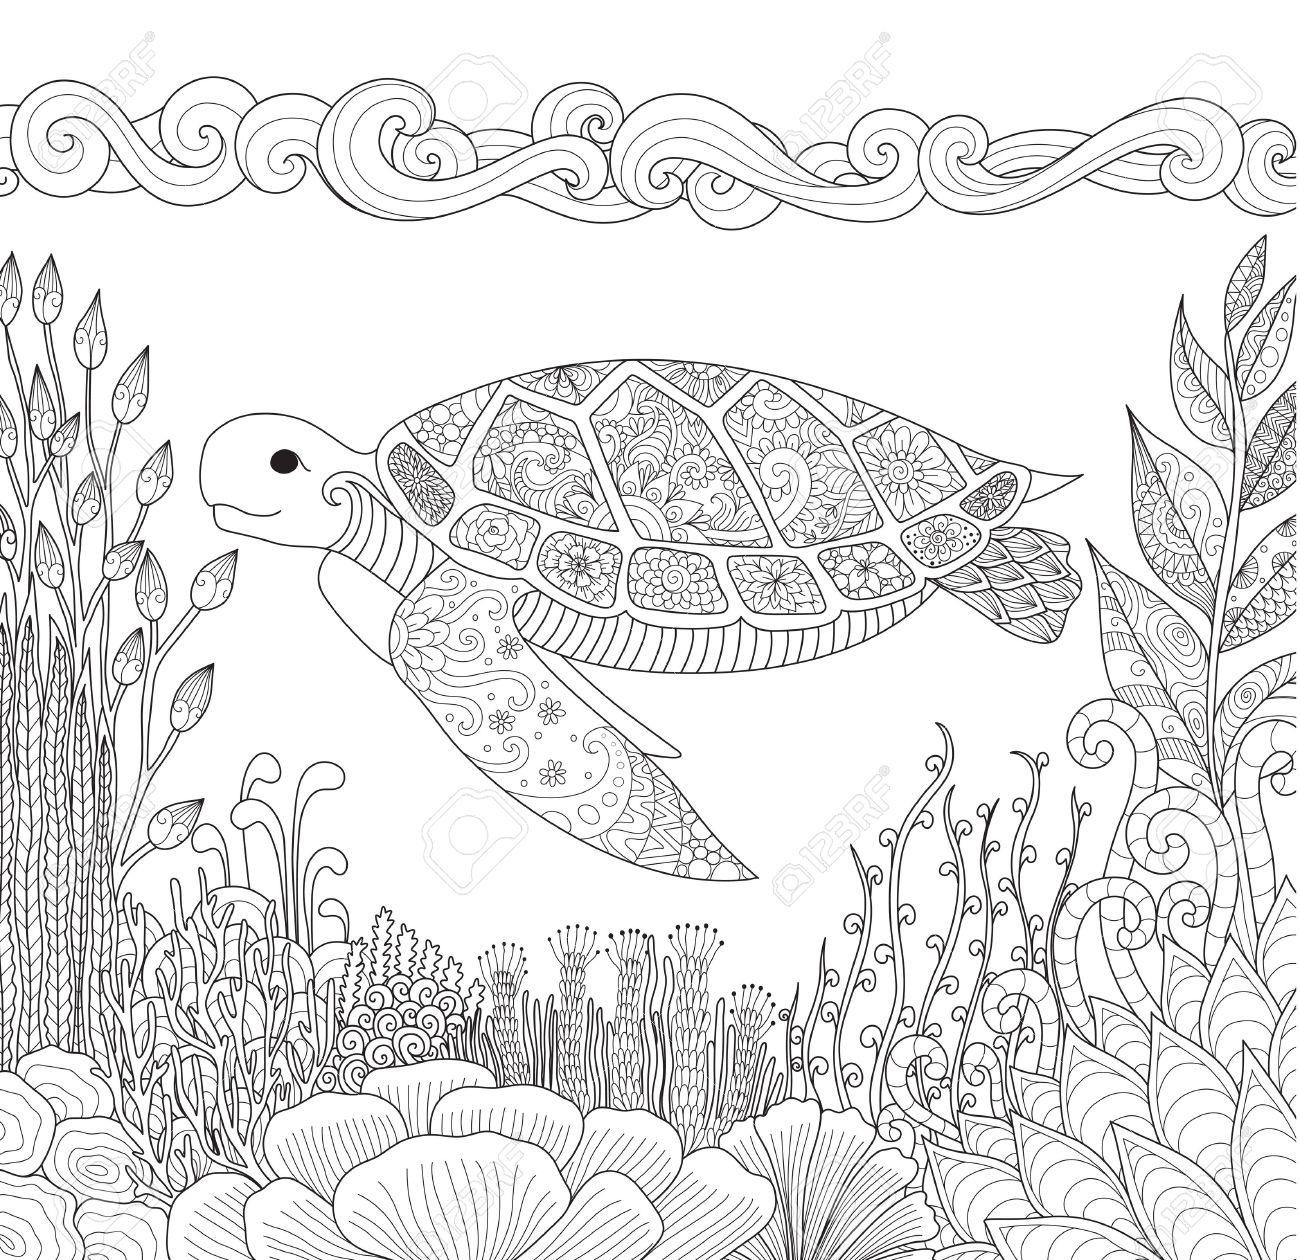 Zen ocean colouring book - Zendoodle Design Of Turtle Swimming In Ocean And Beautiful Corals For Adult Coloring Book For Anti